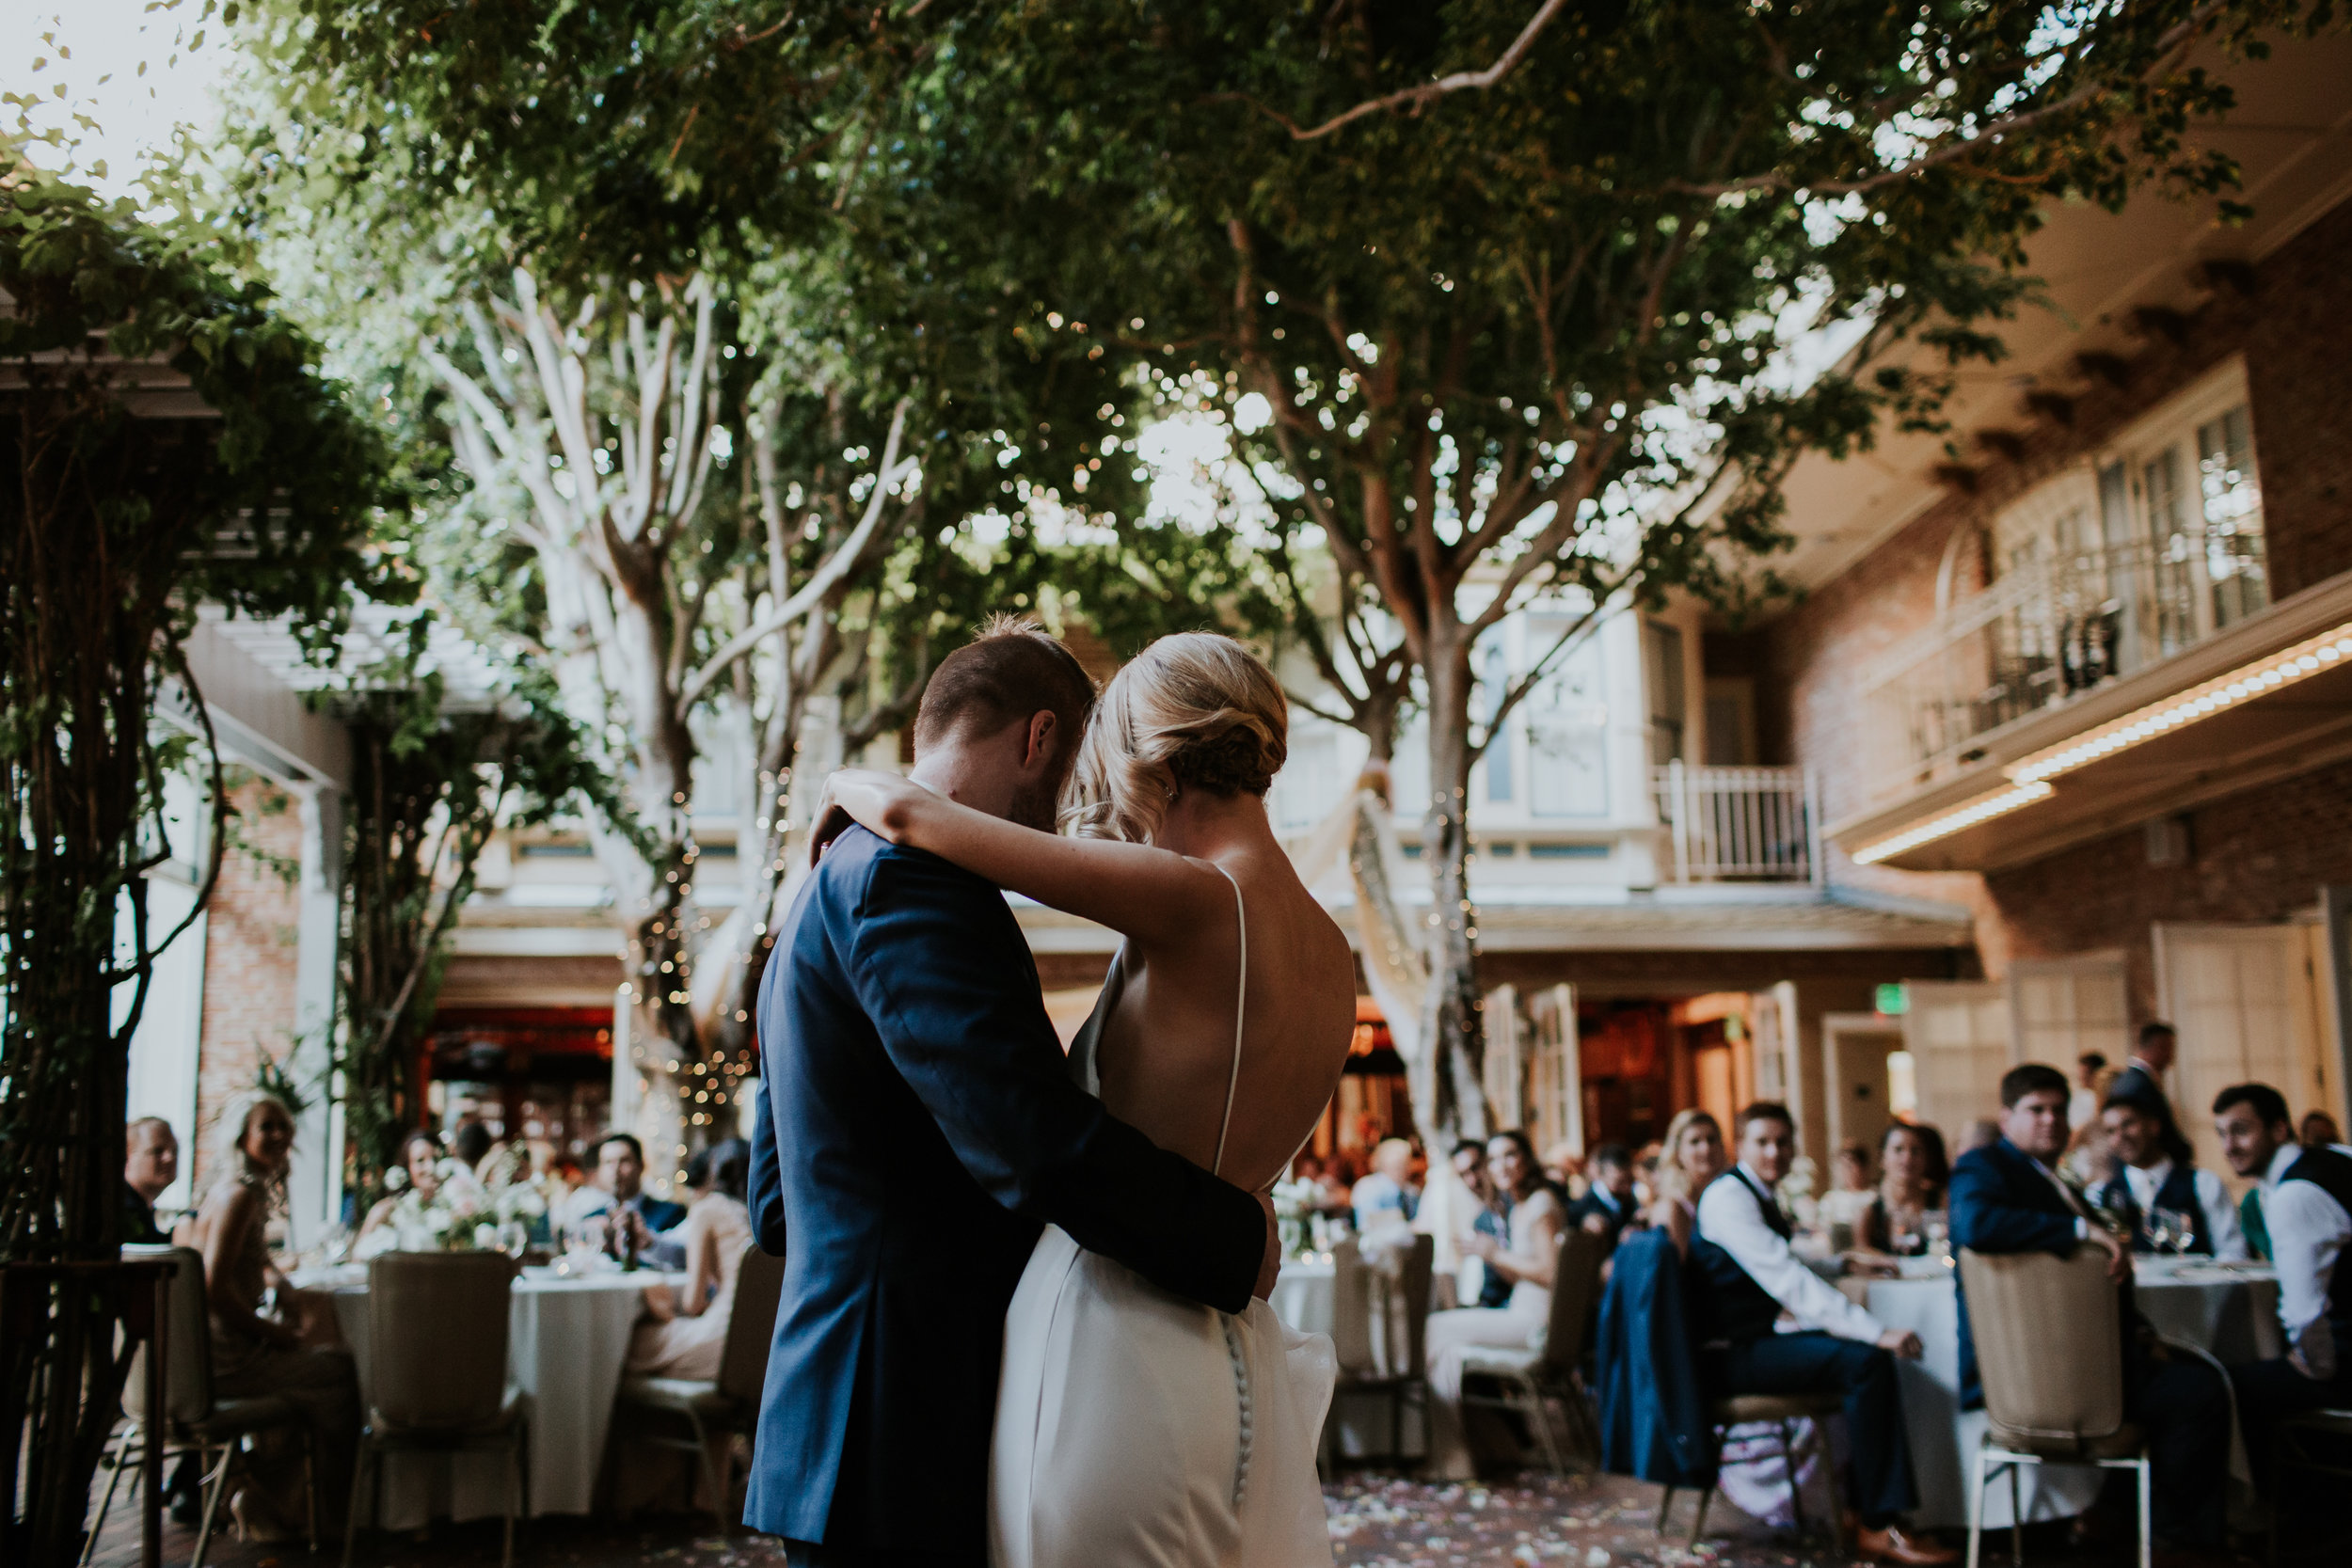 Modern Chic Wedding At The Horton Grand Hotel Bluebell Florals